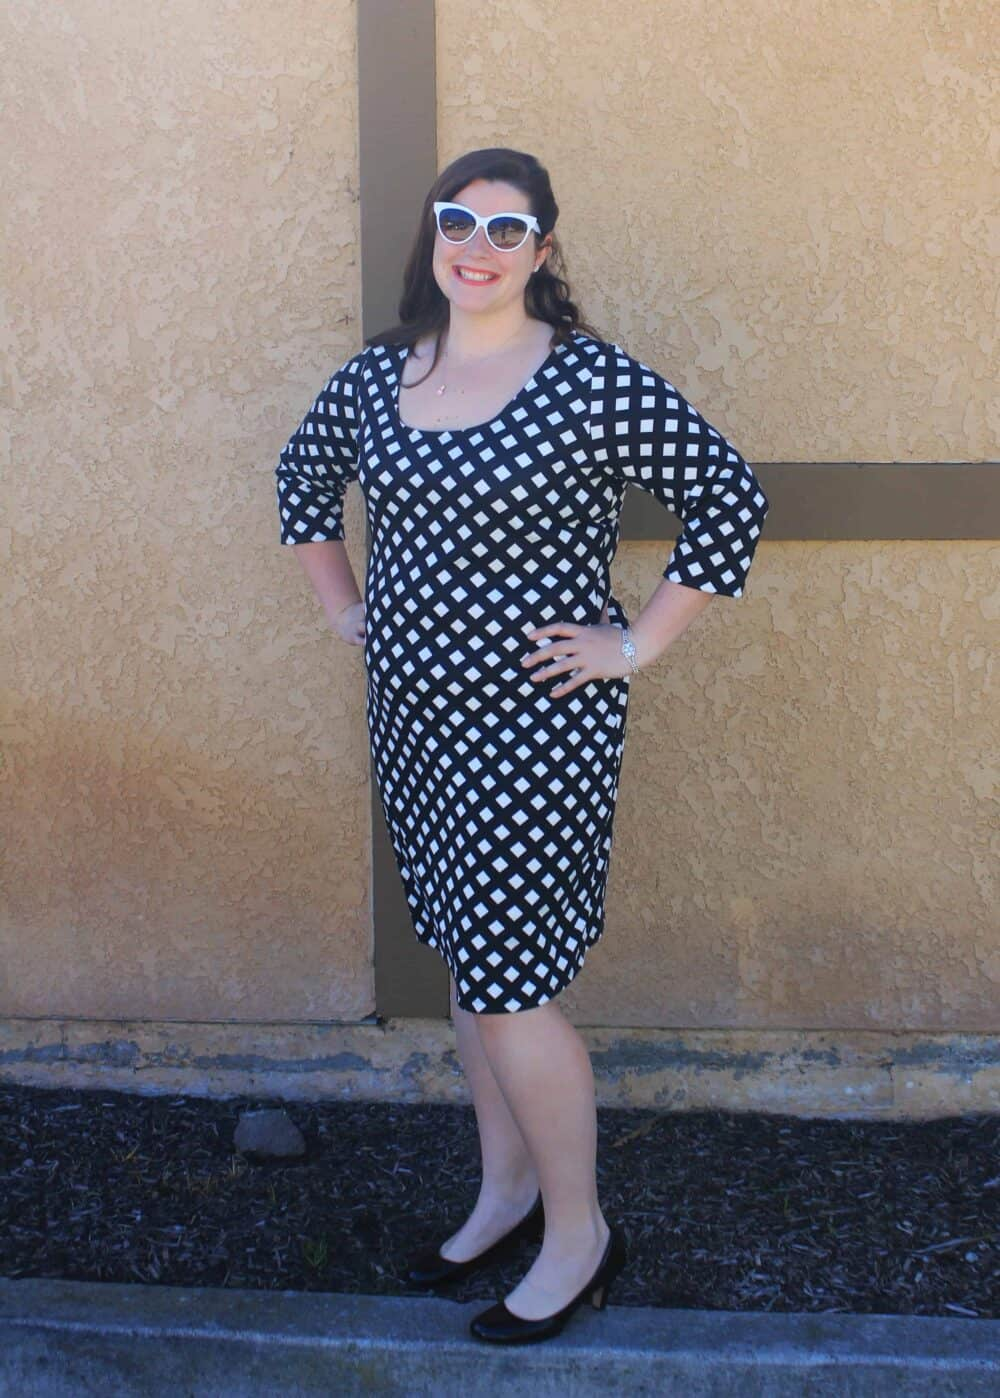 982a9094 Knit sheath dress sewing pattern. Print and download it today.